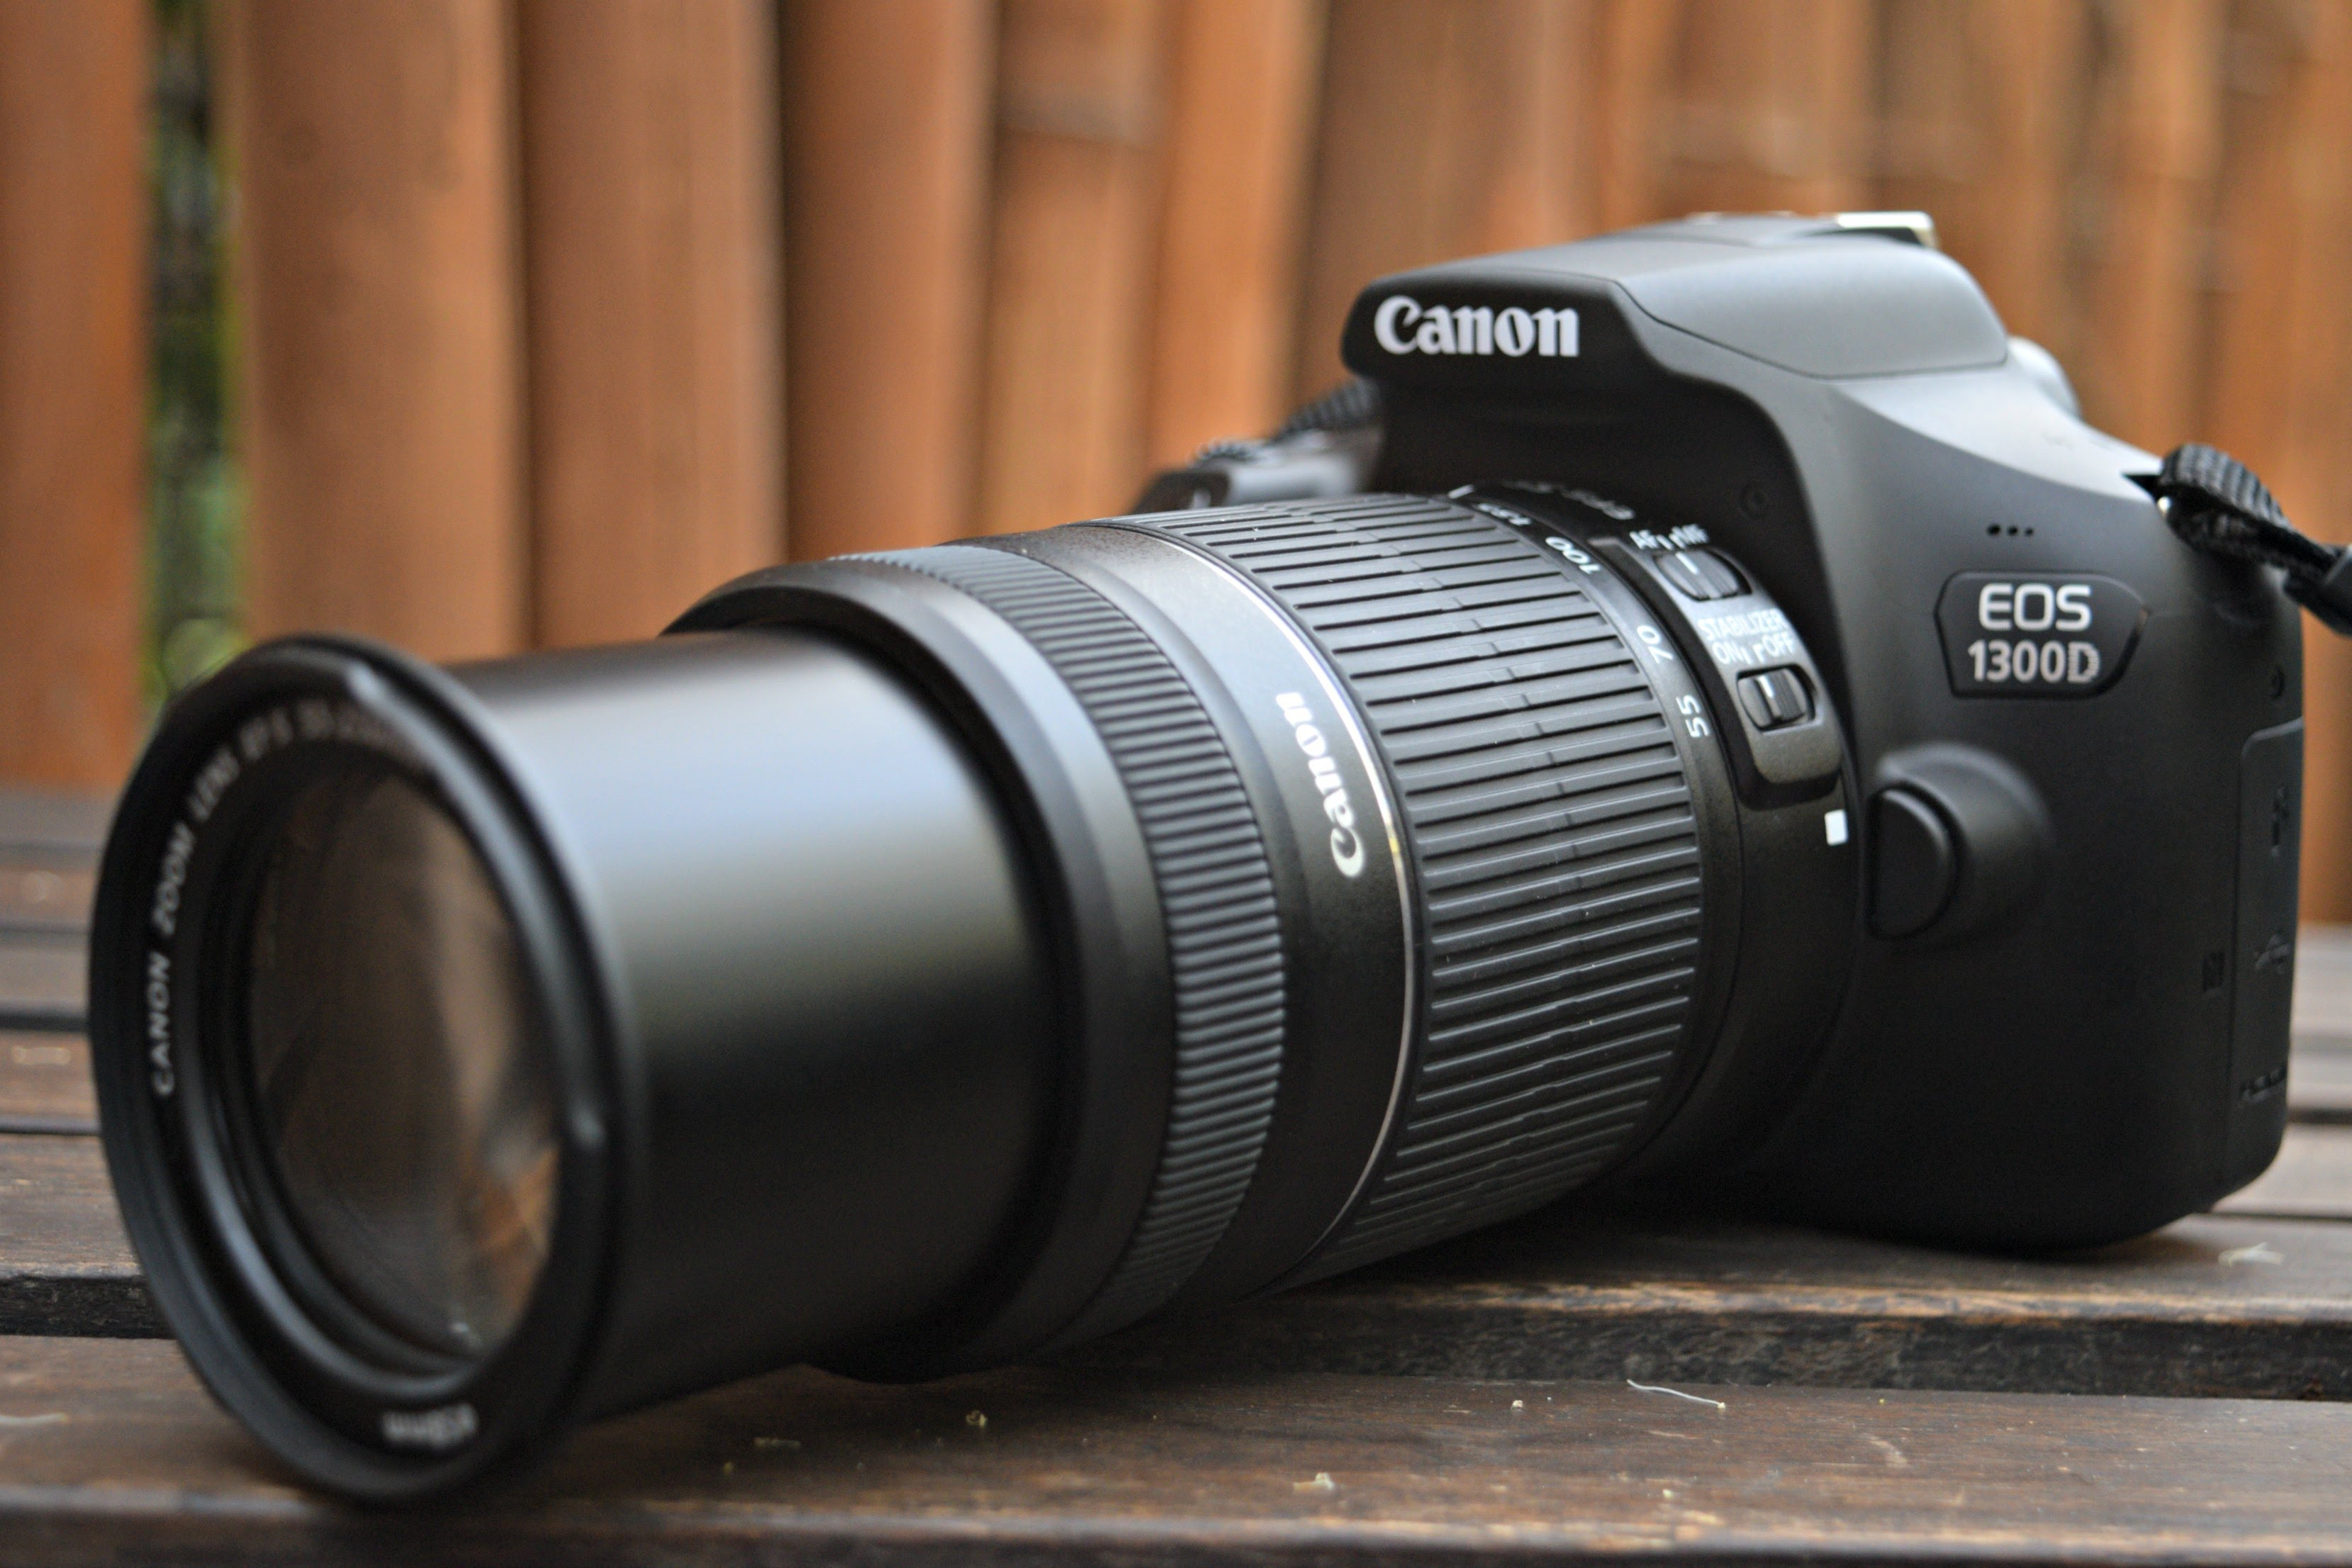 how to add numbers at bottom of pictures canon eos